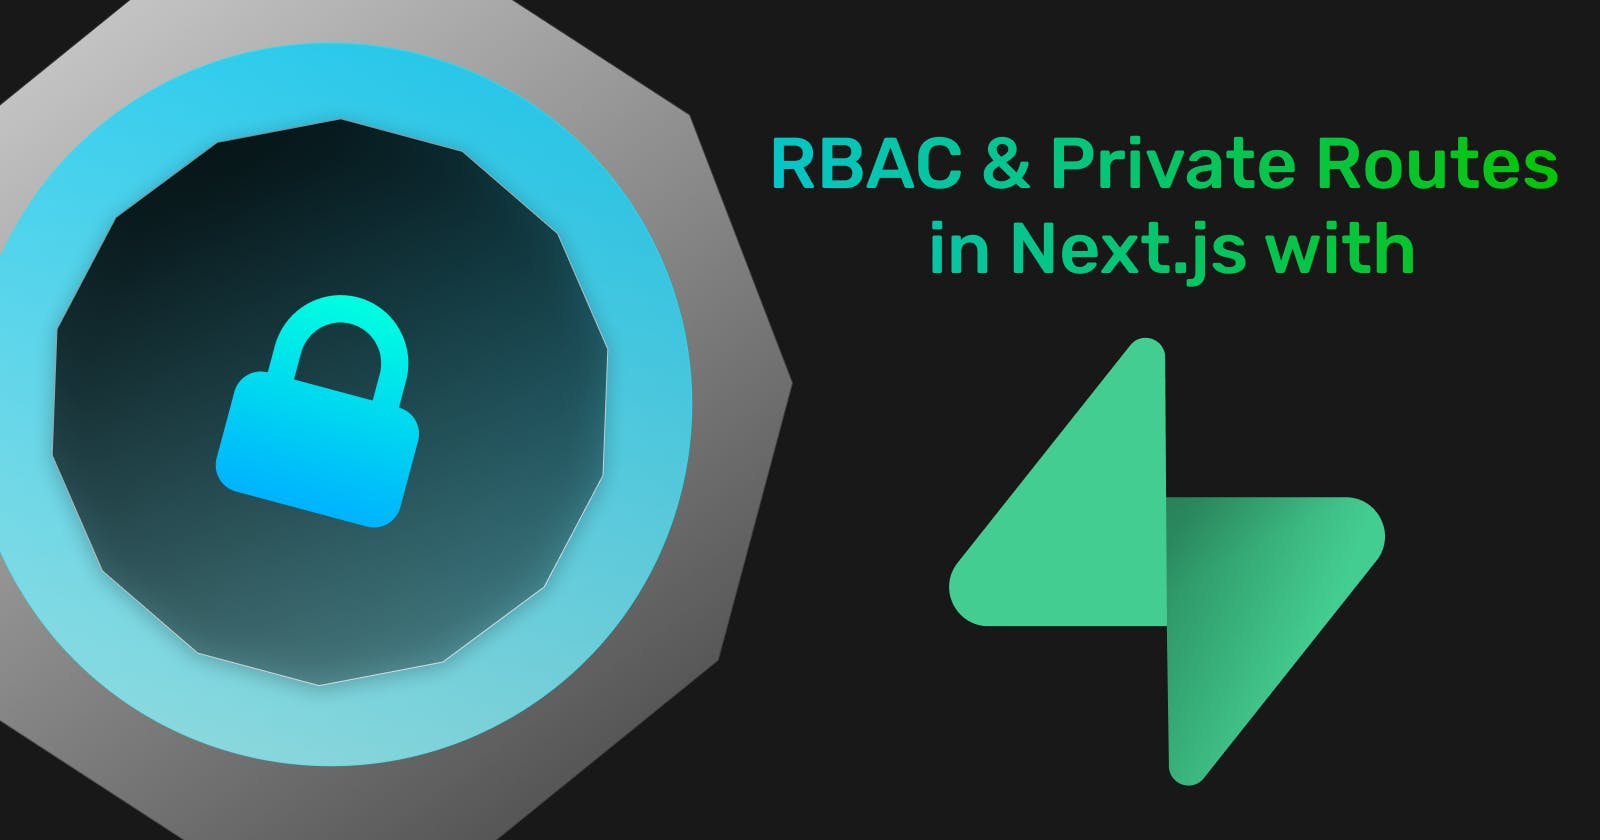 RBAC & Private Routes in Next.js with Supabase using NextShield.